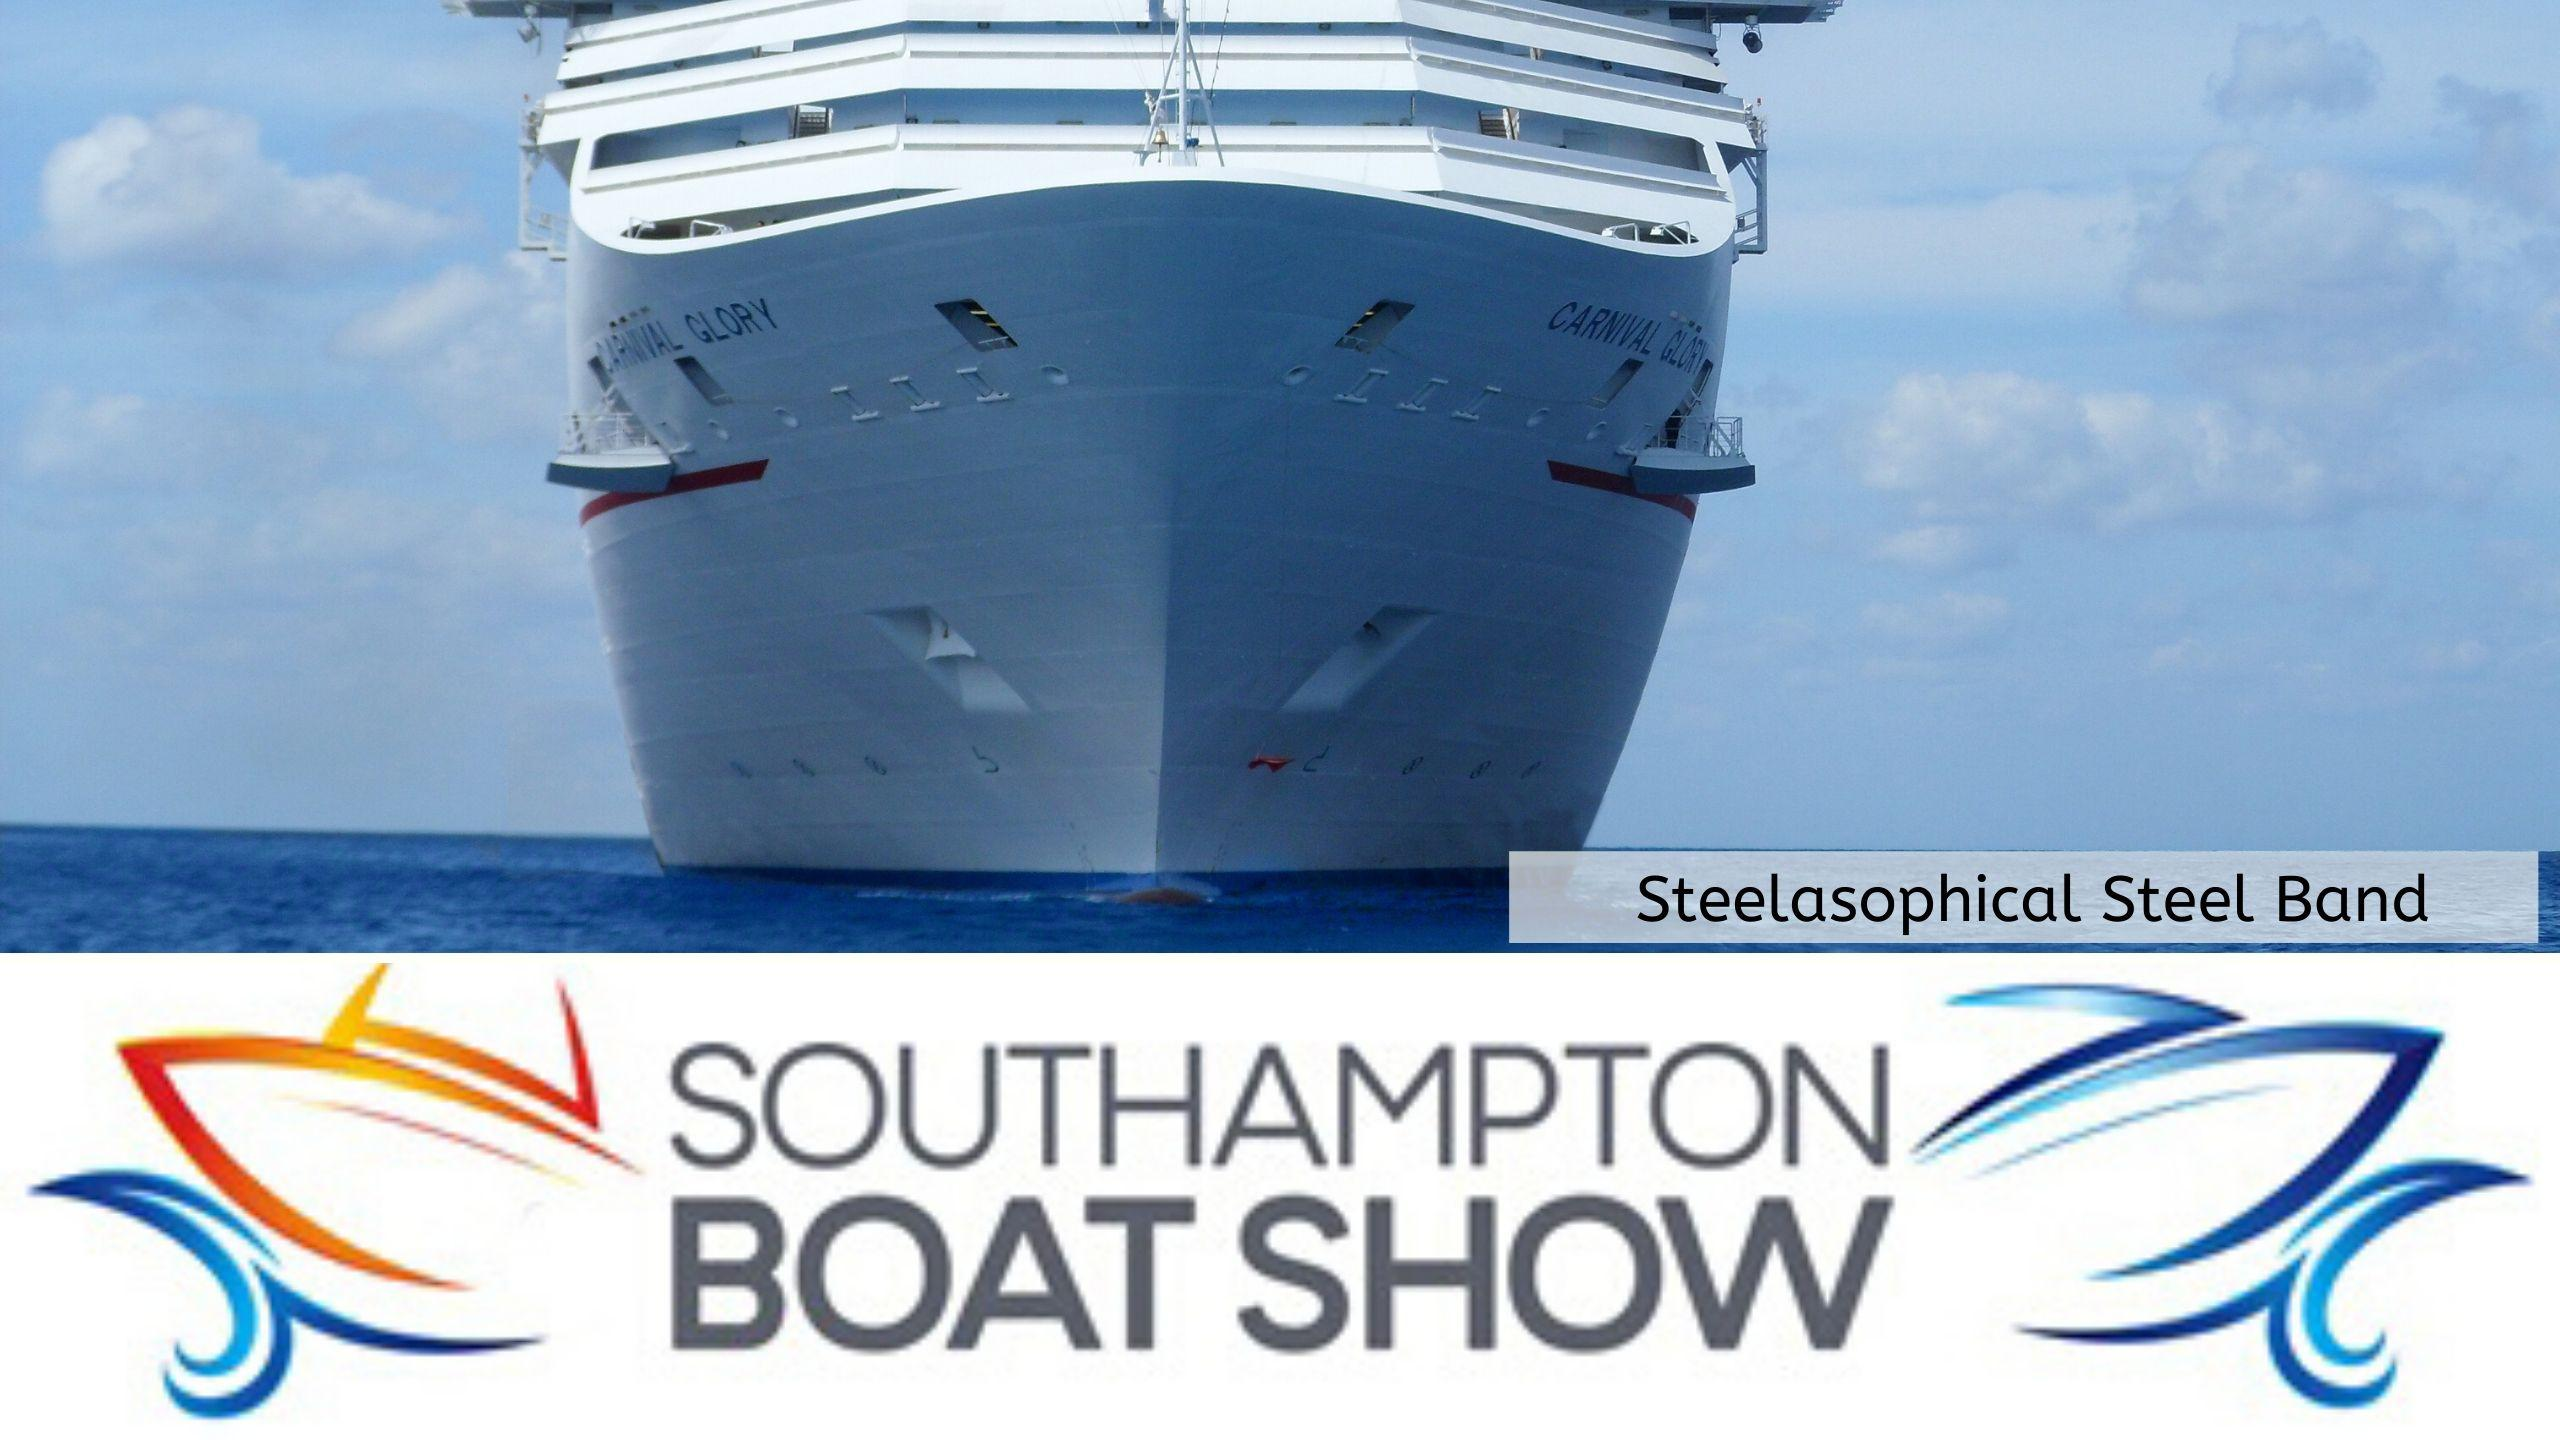 Steelasophical Steel Band Southampton Boat Show Yacht Market 8wd